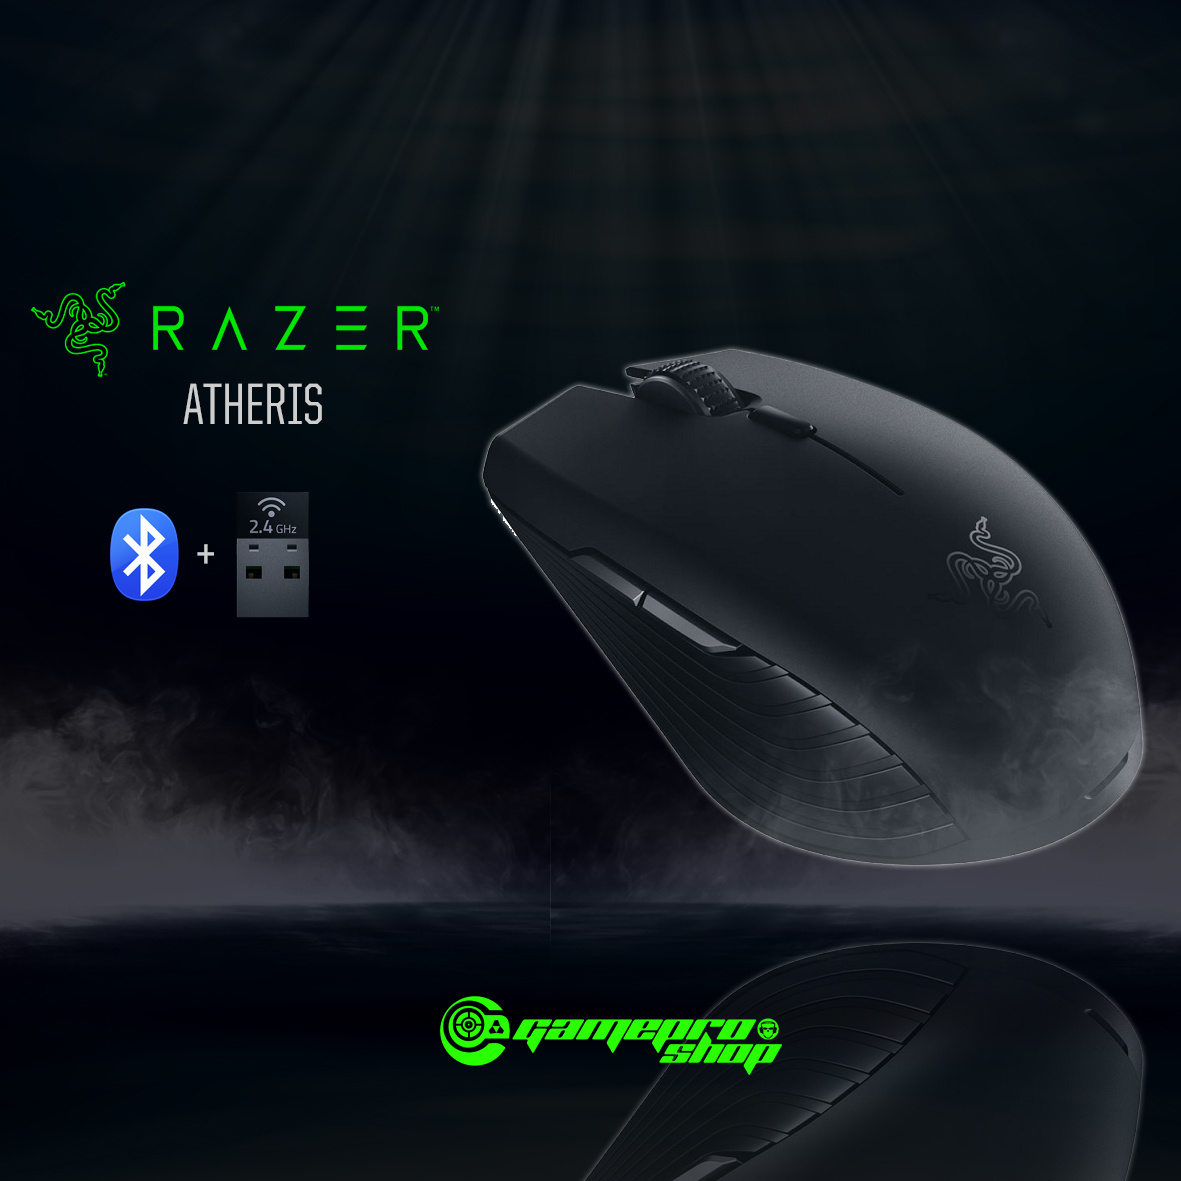 RazerRazer Atheris Gaming Wireless Bluetooth Mouse